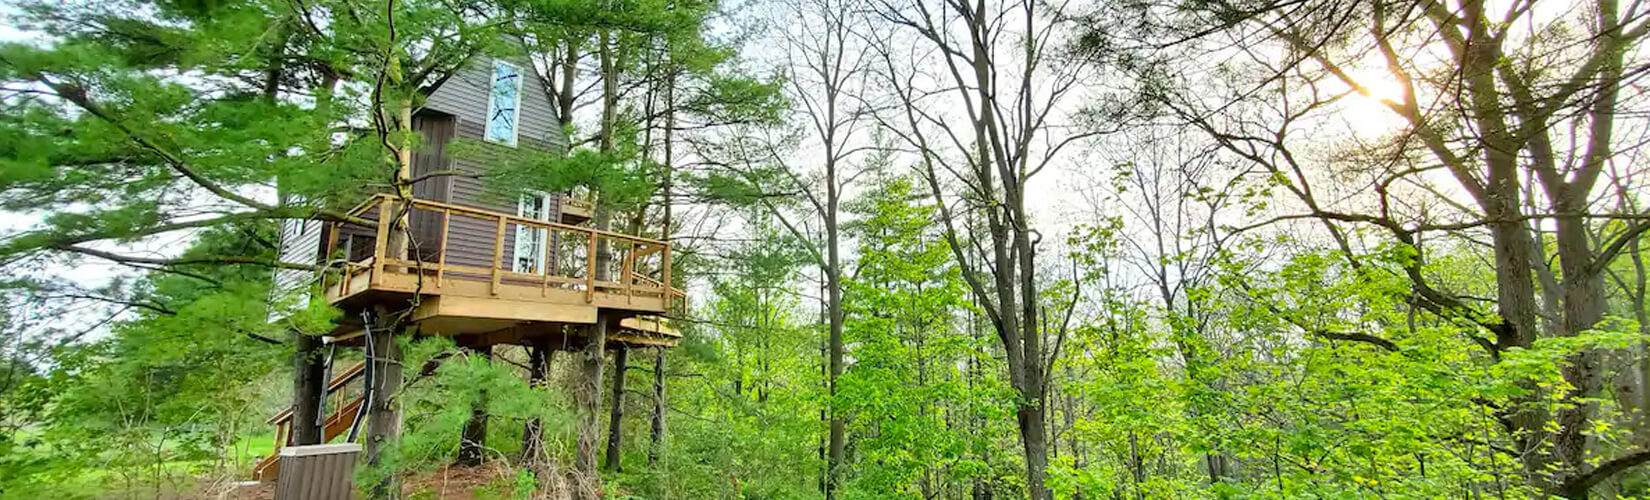 8 Treehouse Airbnbs in Ontario For an Unbe-leaf-able Getaway :: I've Been Bit! Travel Blog